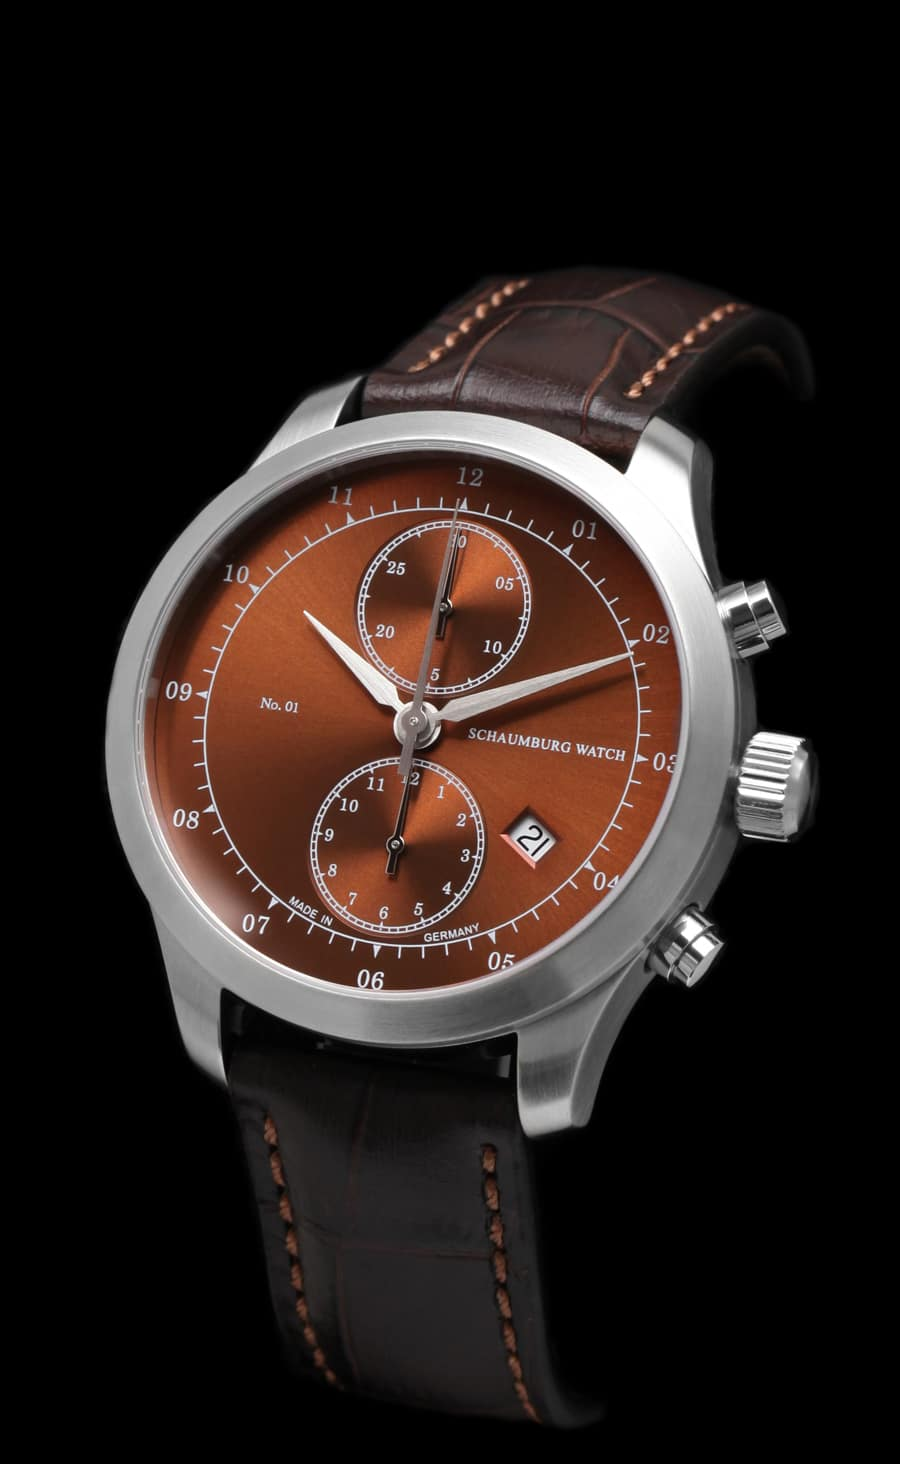 Schaumburg Watch: Chronograph No.01, braunes Zifferblatt